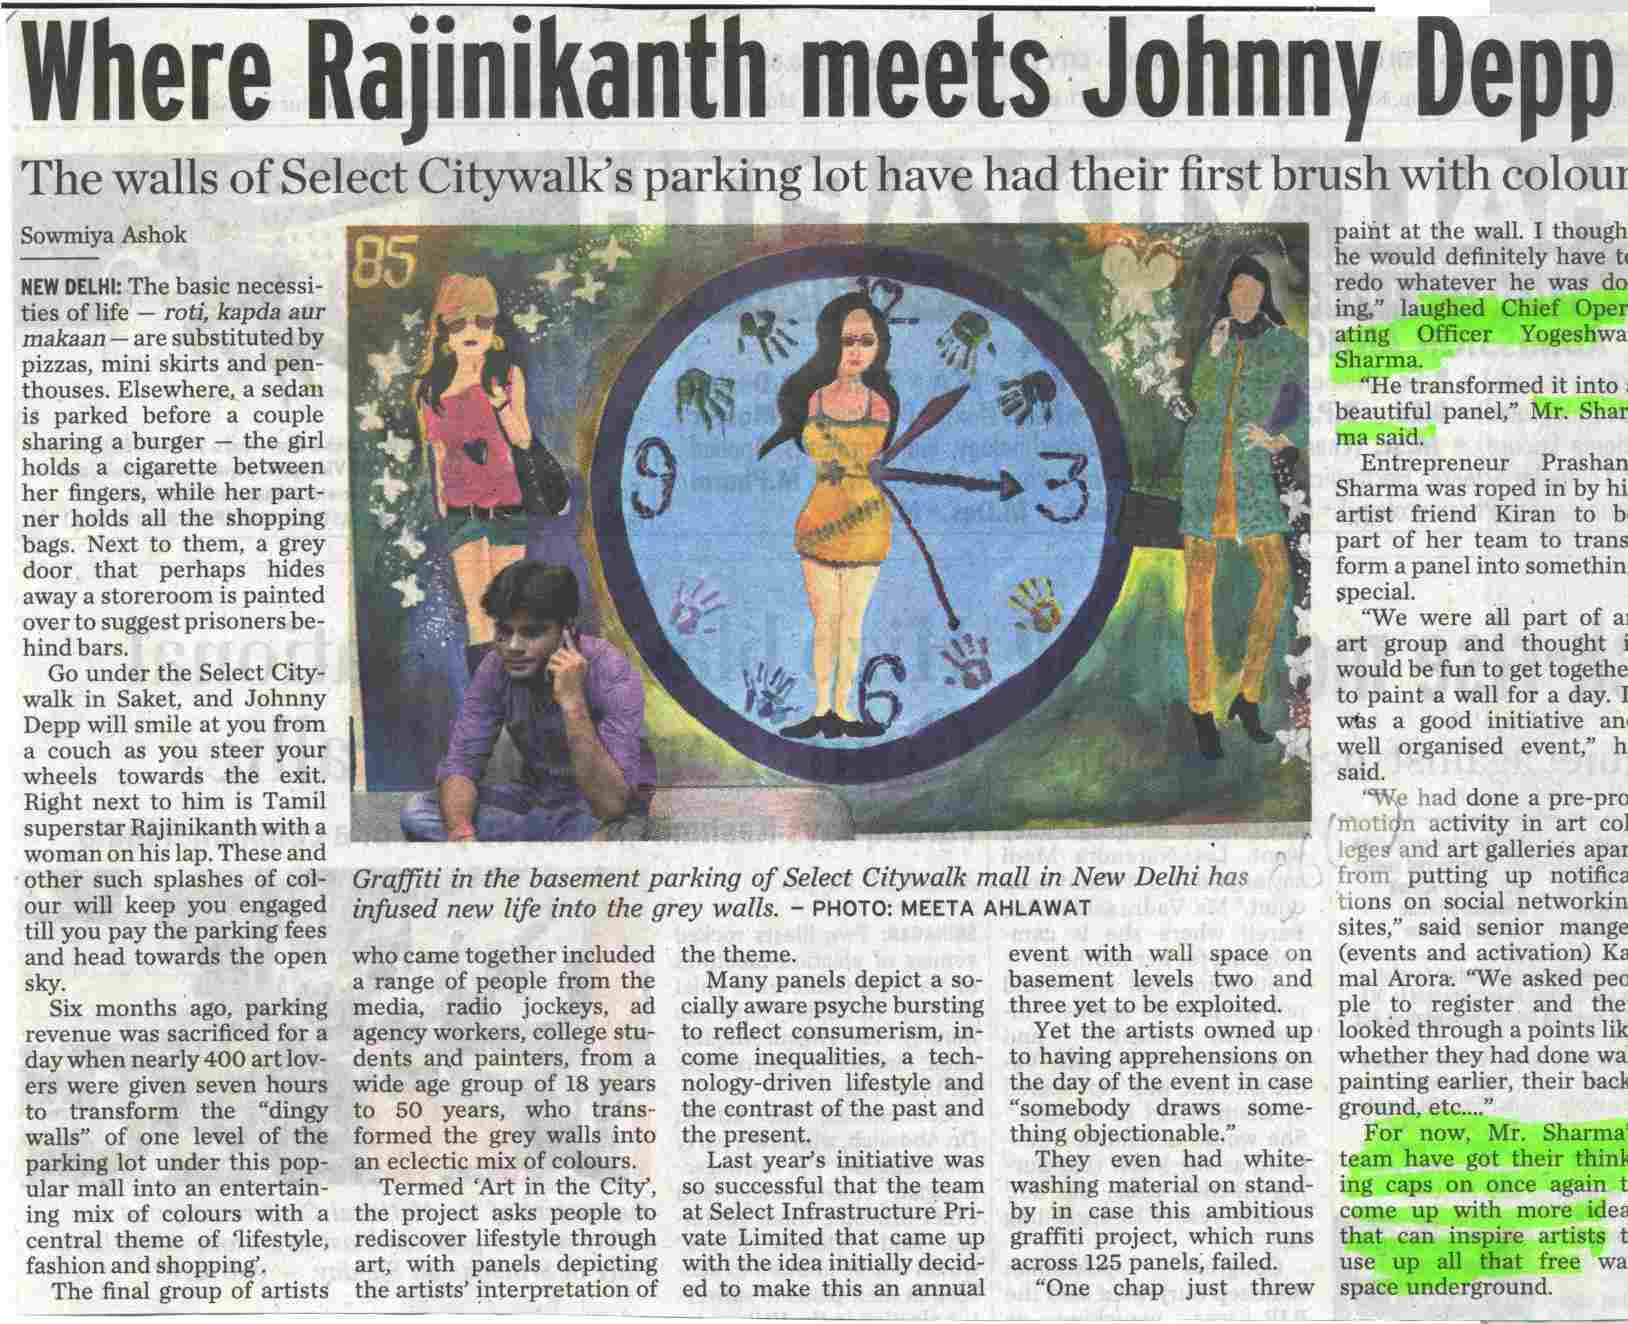 Where Rajinikanth meets Johnny Depp